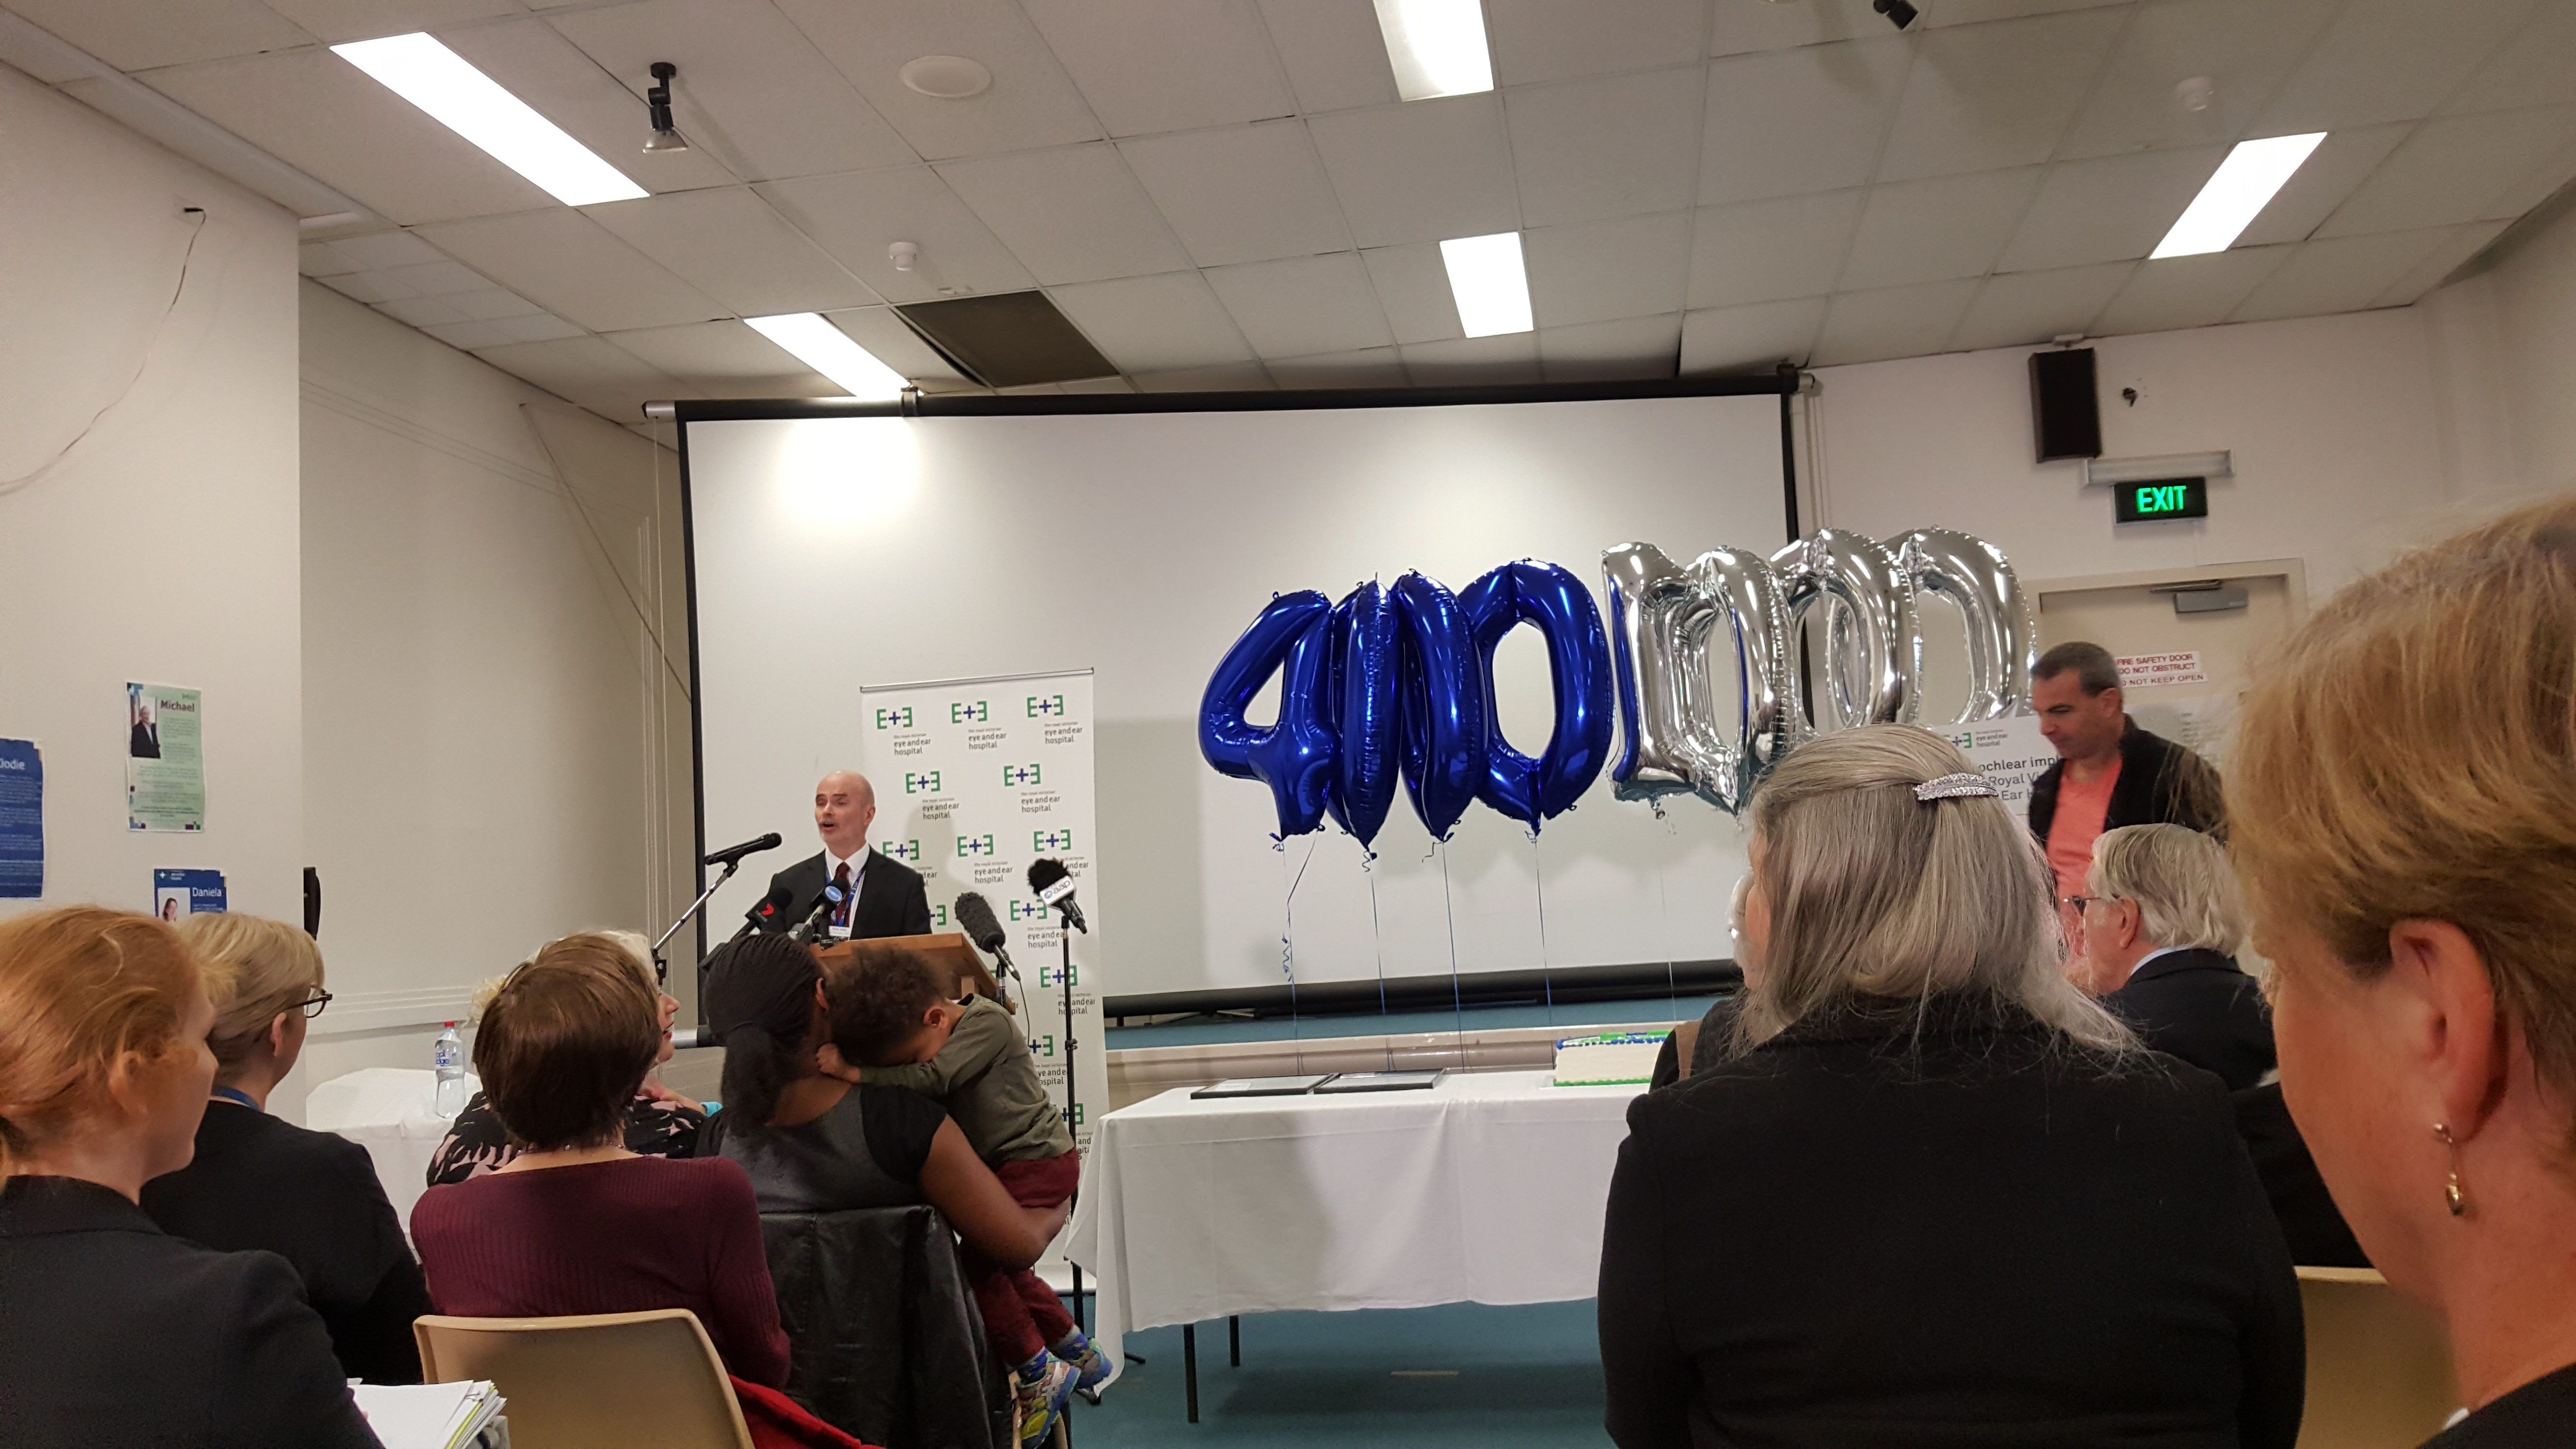 4000 cochlear implants, and counting!